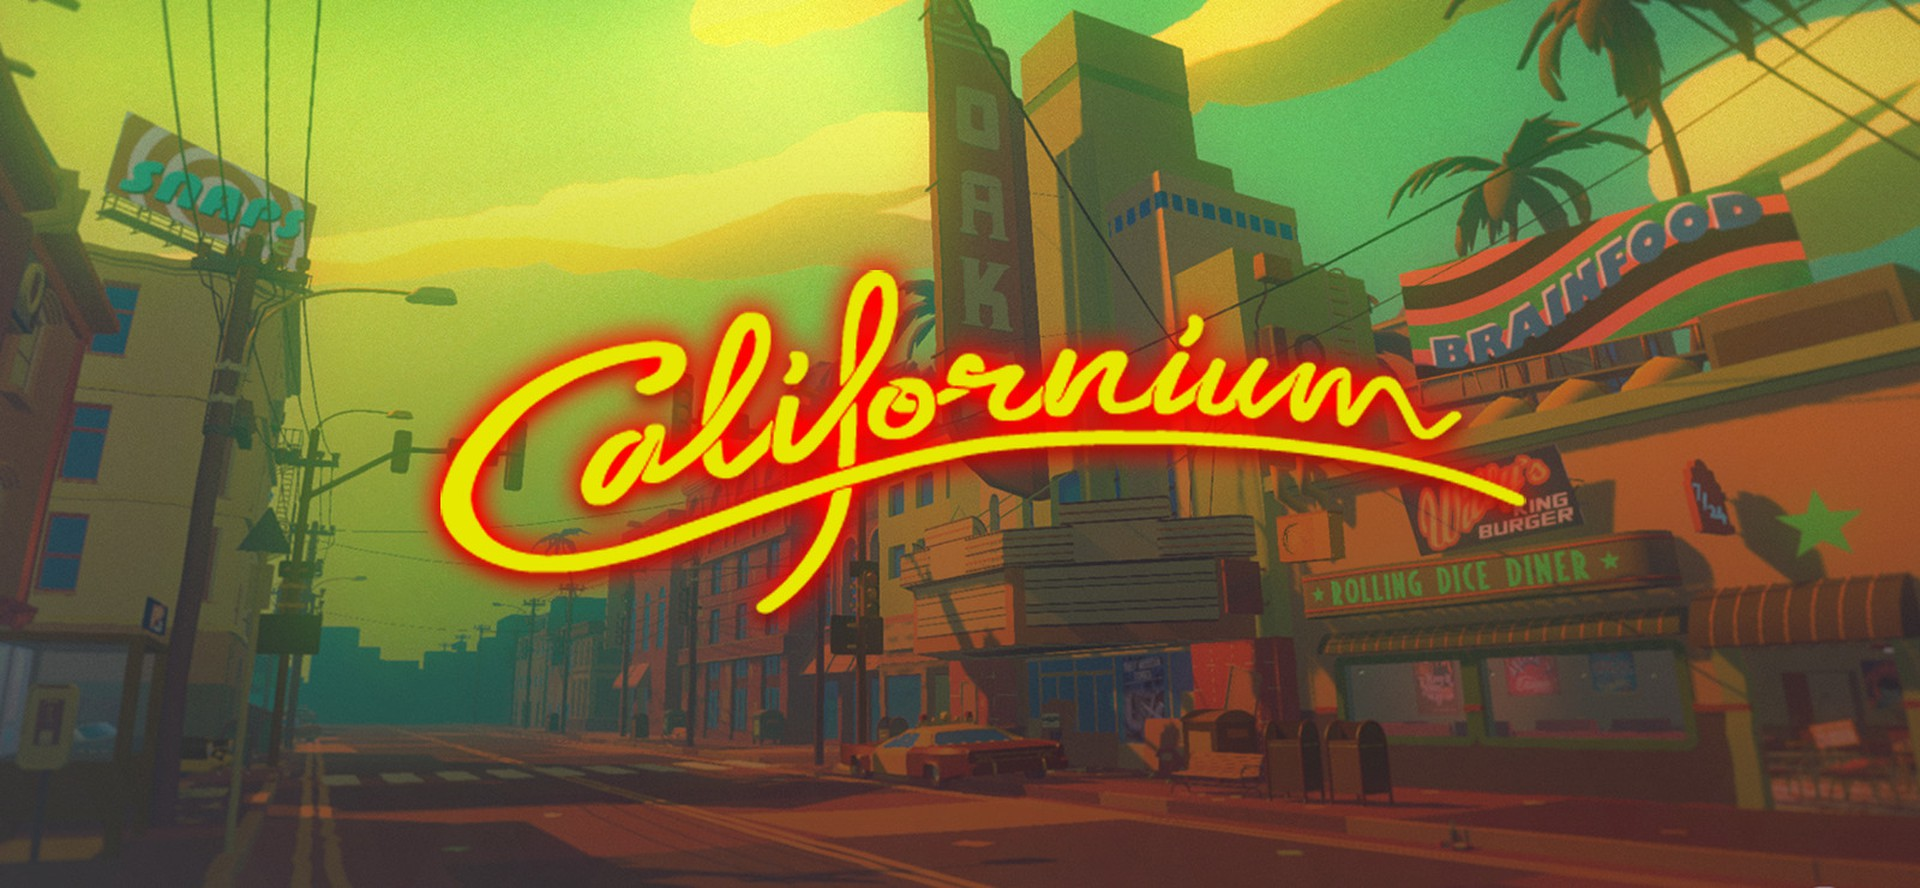 Californium Video